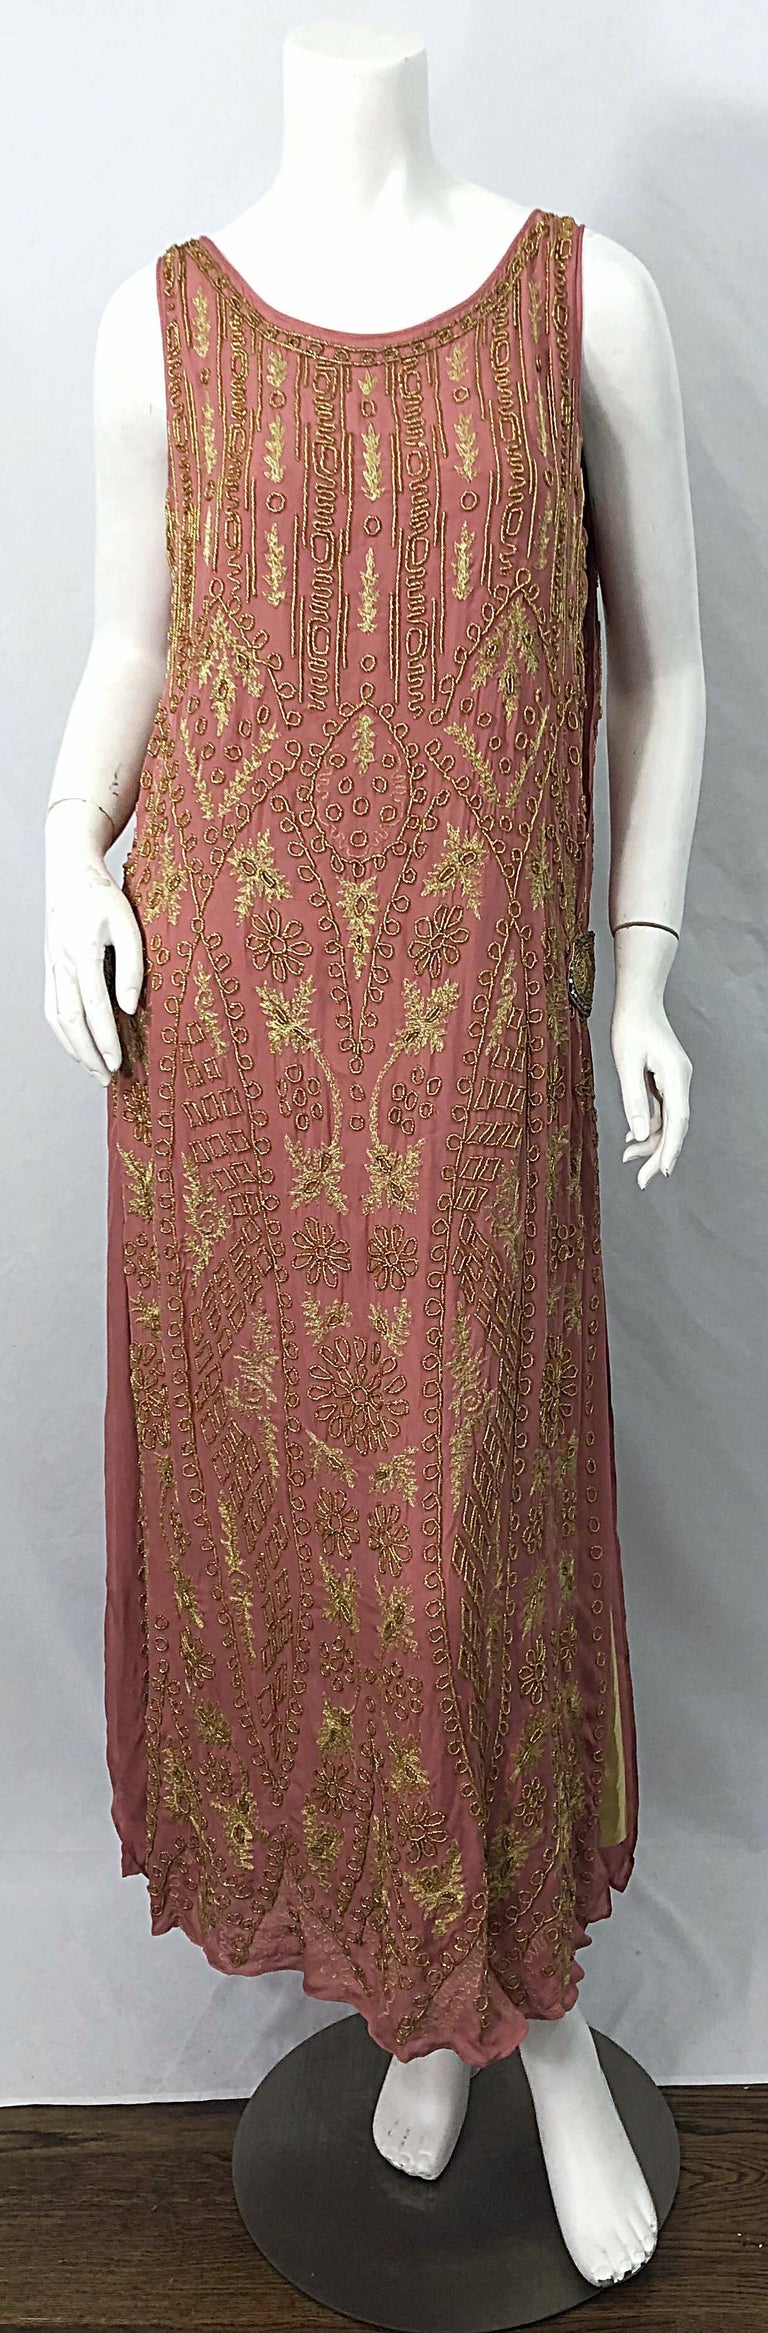 Phenomenal 1920s French couture pink and gold beaded Gatsby style flapper dress ! Features the most beautiful rose colored pink, with gold lame panels at each vent. Rhinestone buckle details at each hip. Simply slips over the head. Hand embroidery